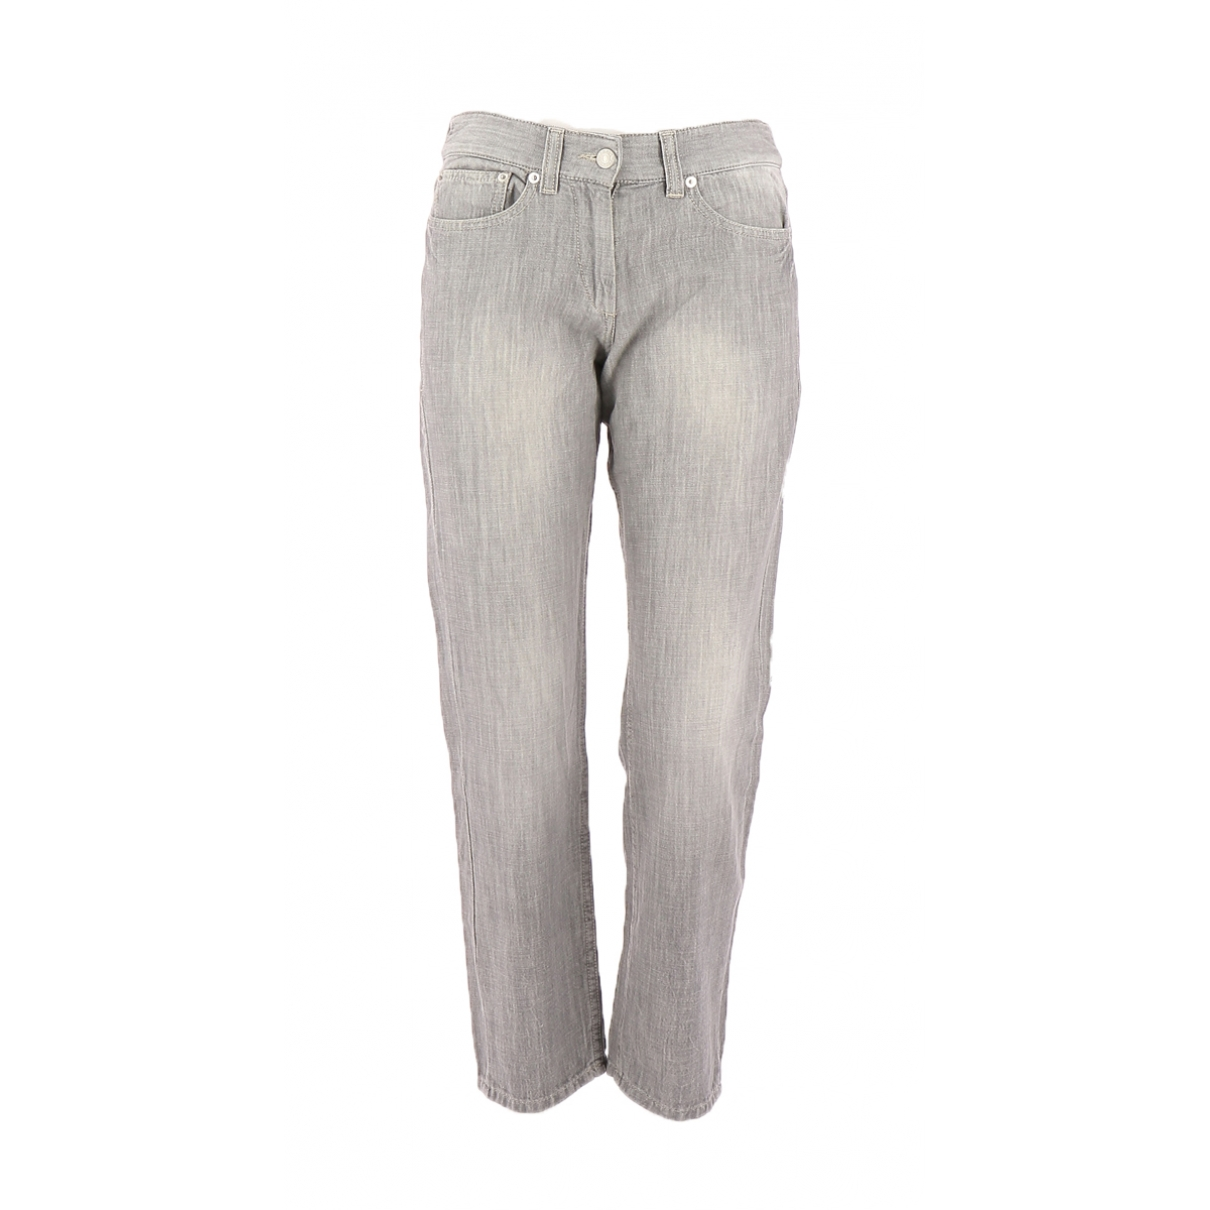 Isabel Marant Etoile \N Grey Denim - Jeans Trousers for Women 34 FR